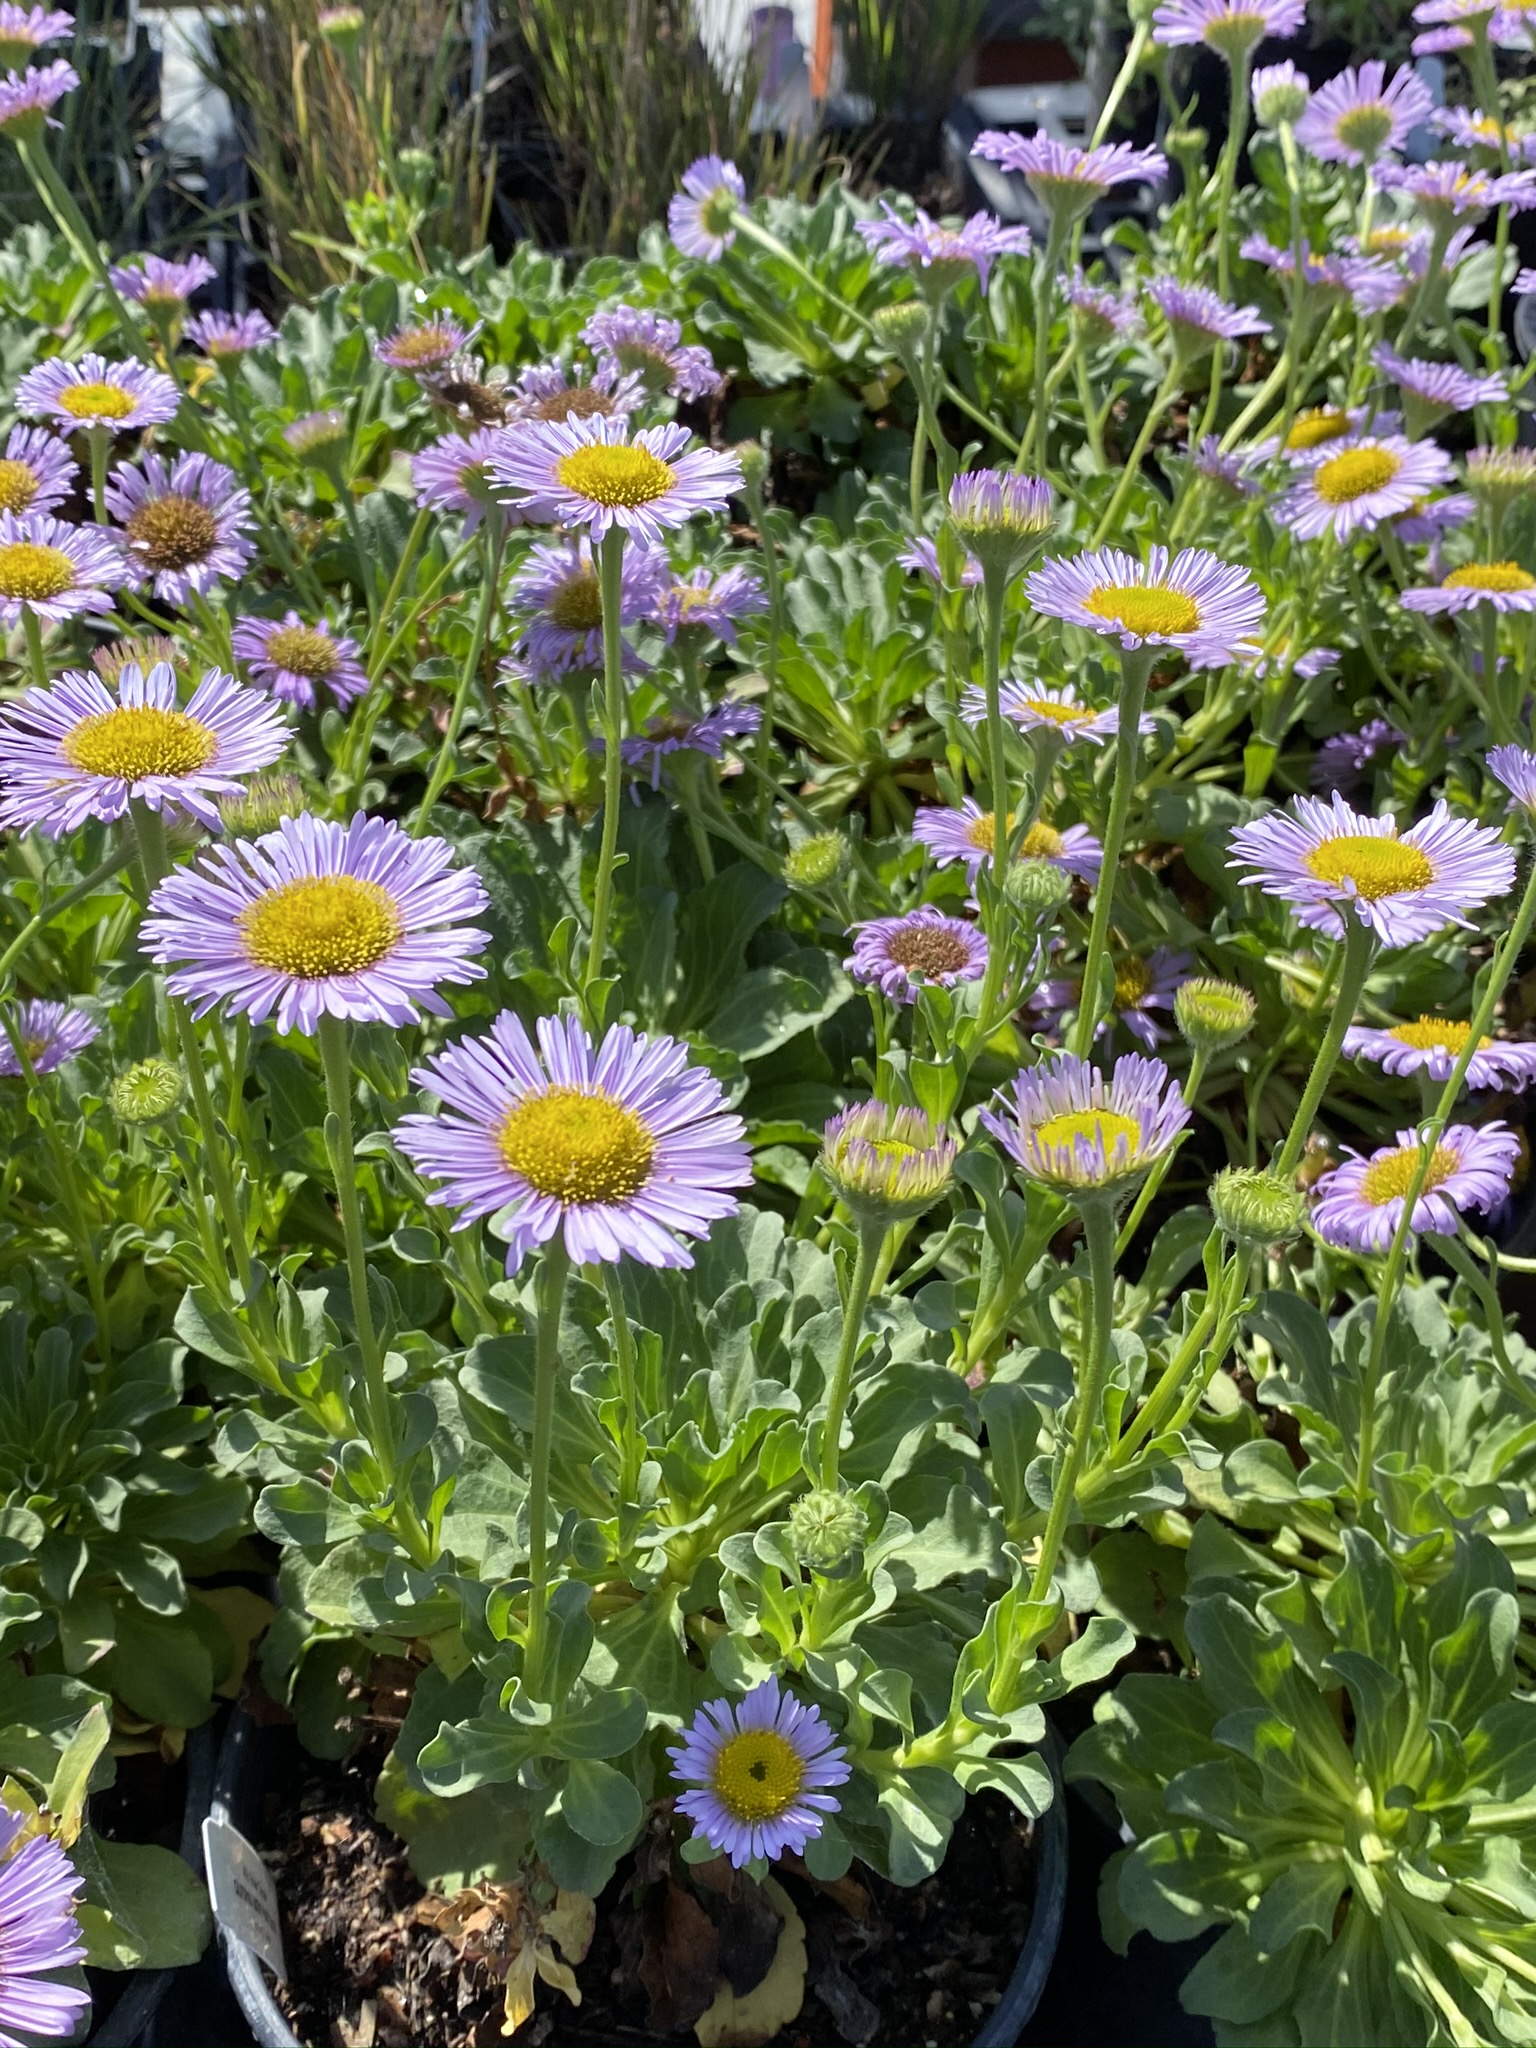 Erigeron glaucus (Seaside Daisy) at the CNPS Milo Baker Nursery